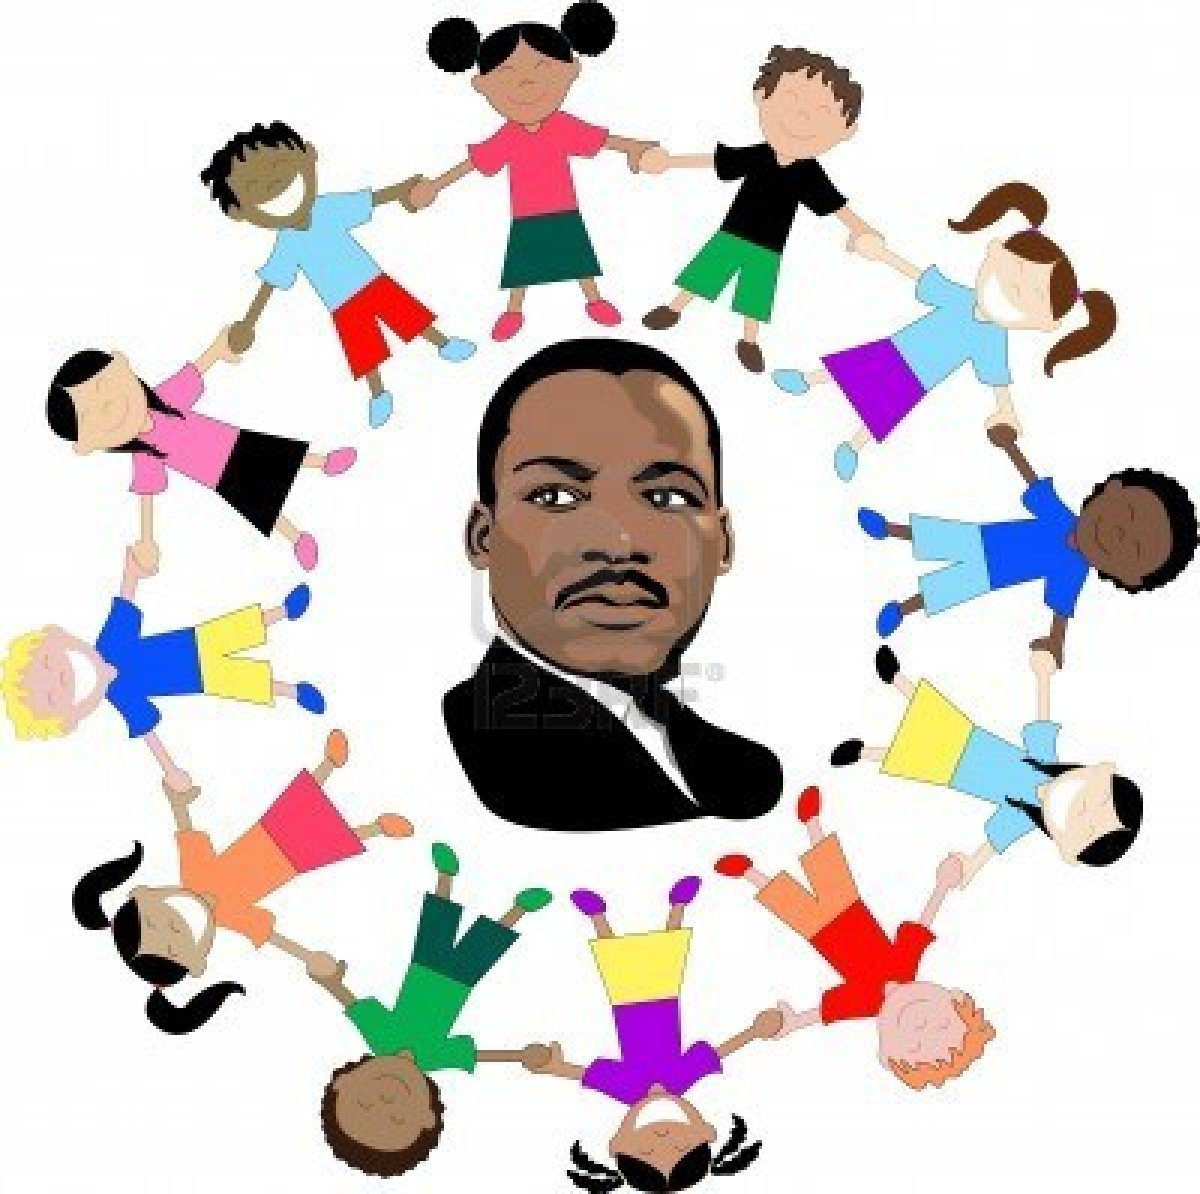 martin luther king jr day clipart clipart panda free clipart images rh clipartpanda com martin luther king clip art images martin luther king clip art images